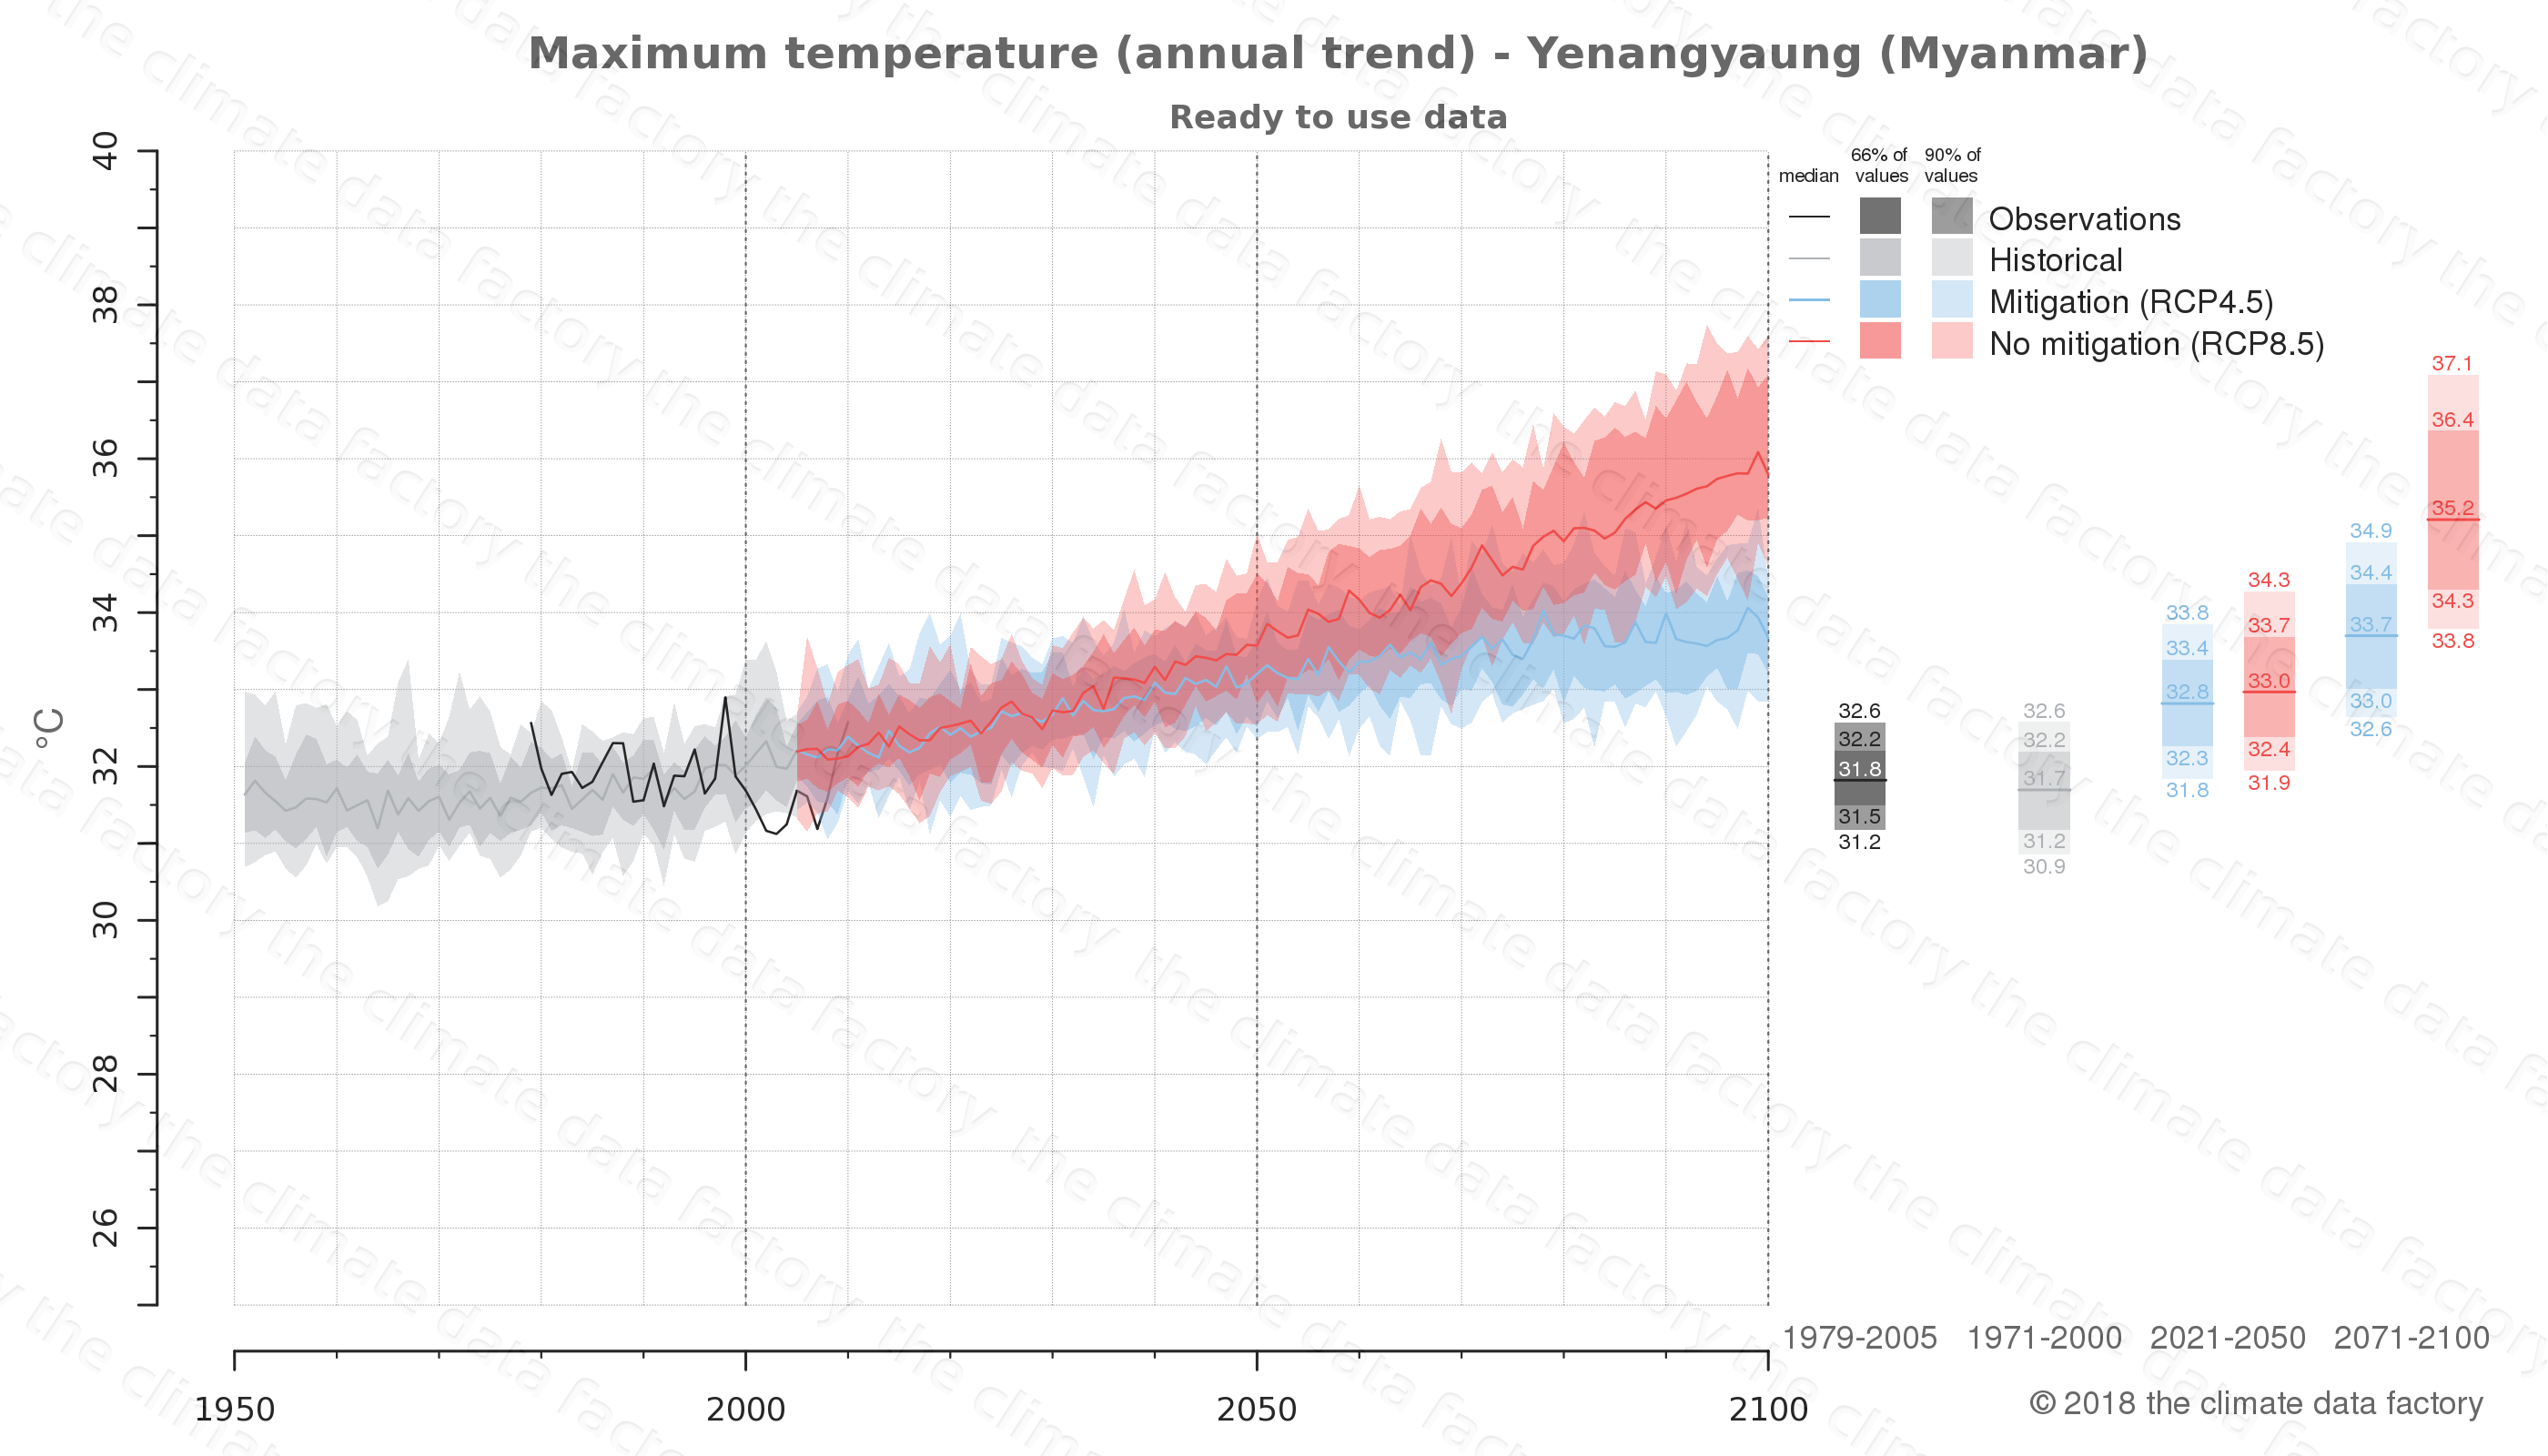 climate change data policy adaptation climate graph city data maximum-temperature yenangyaung myanmar